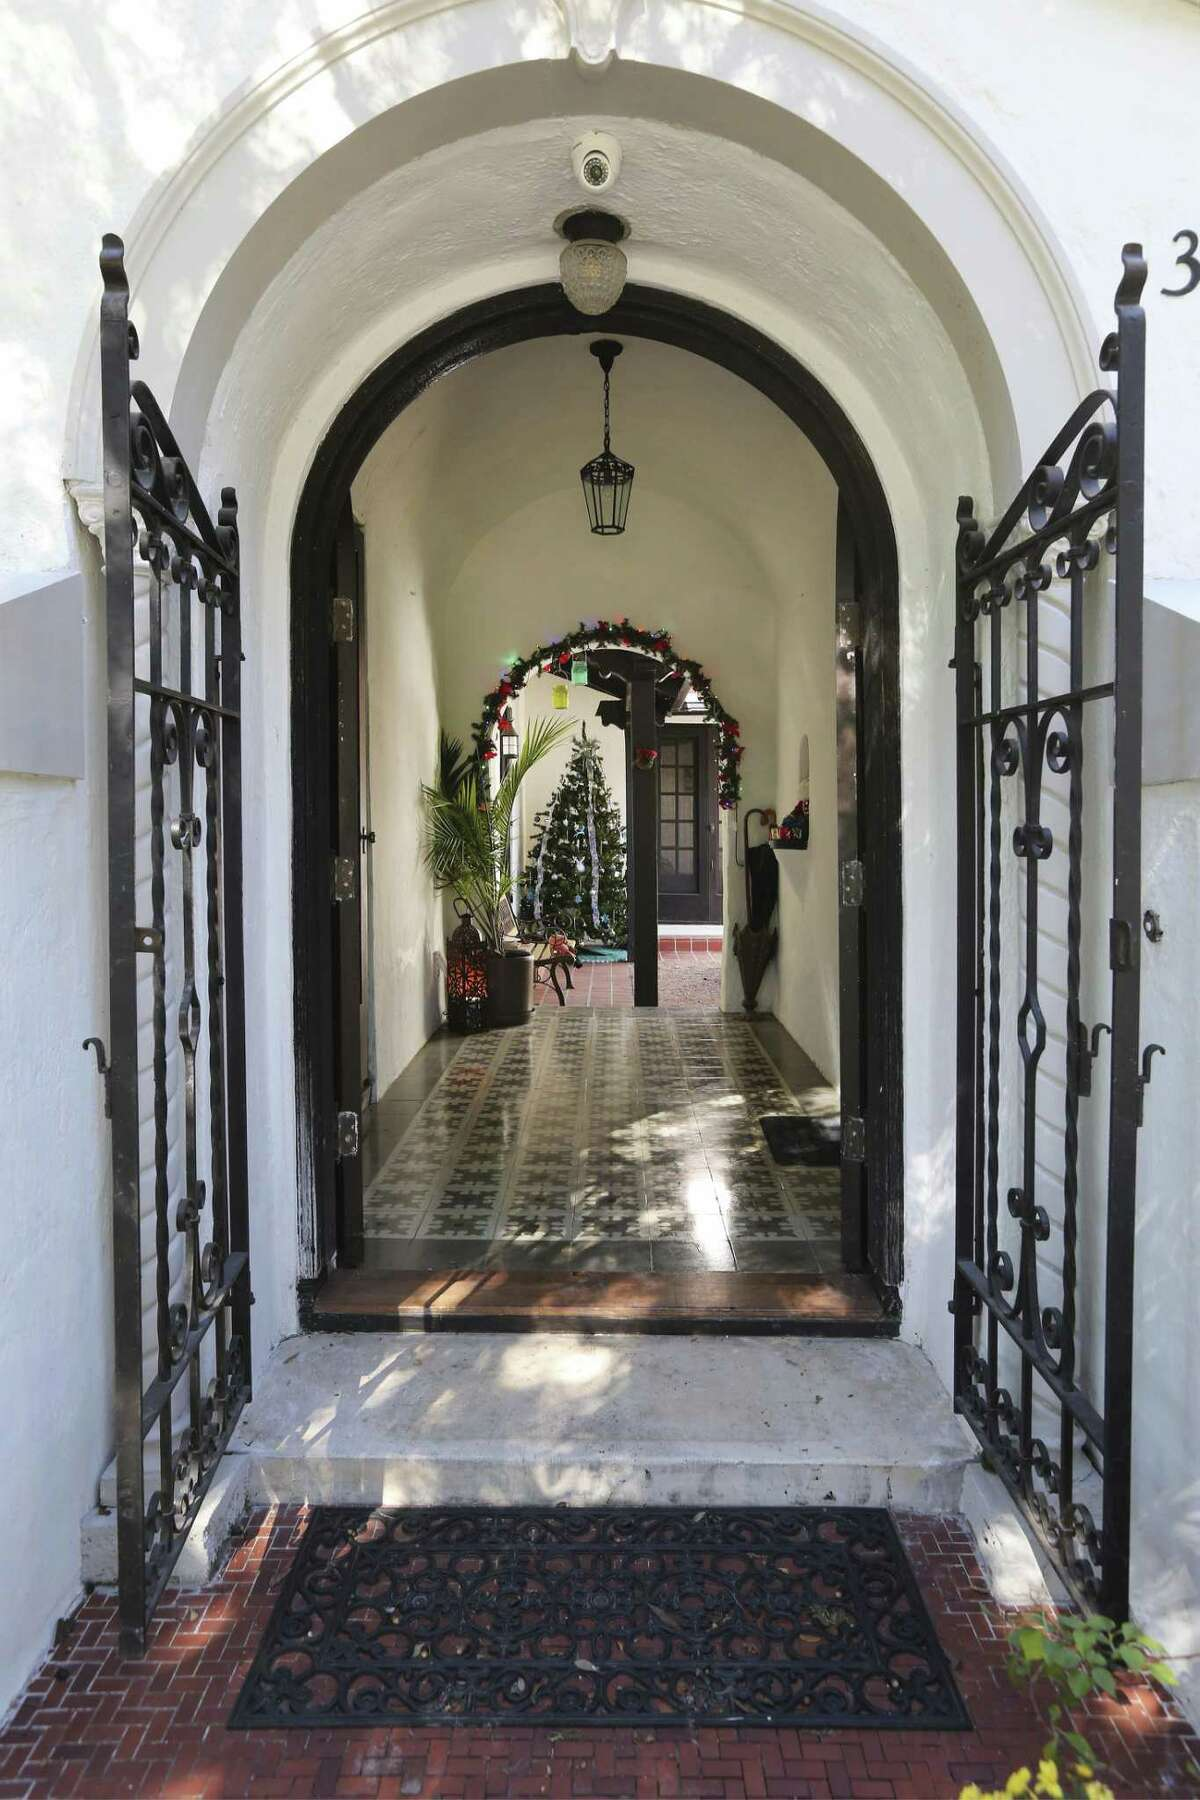 View of the main entrance to the home. Zappala and Williamson worked eight hours a day, five to six days a week for about 18 months to complete the renovation of the three bedroom, two bath Mediterranean-style house.